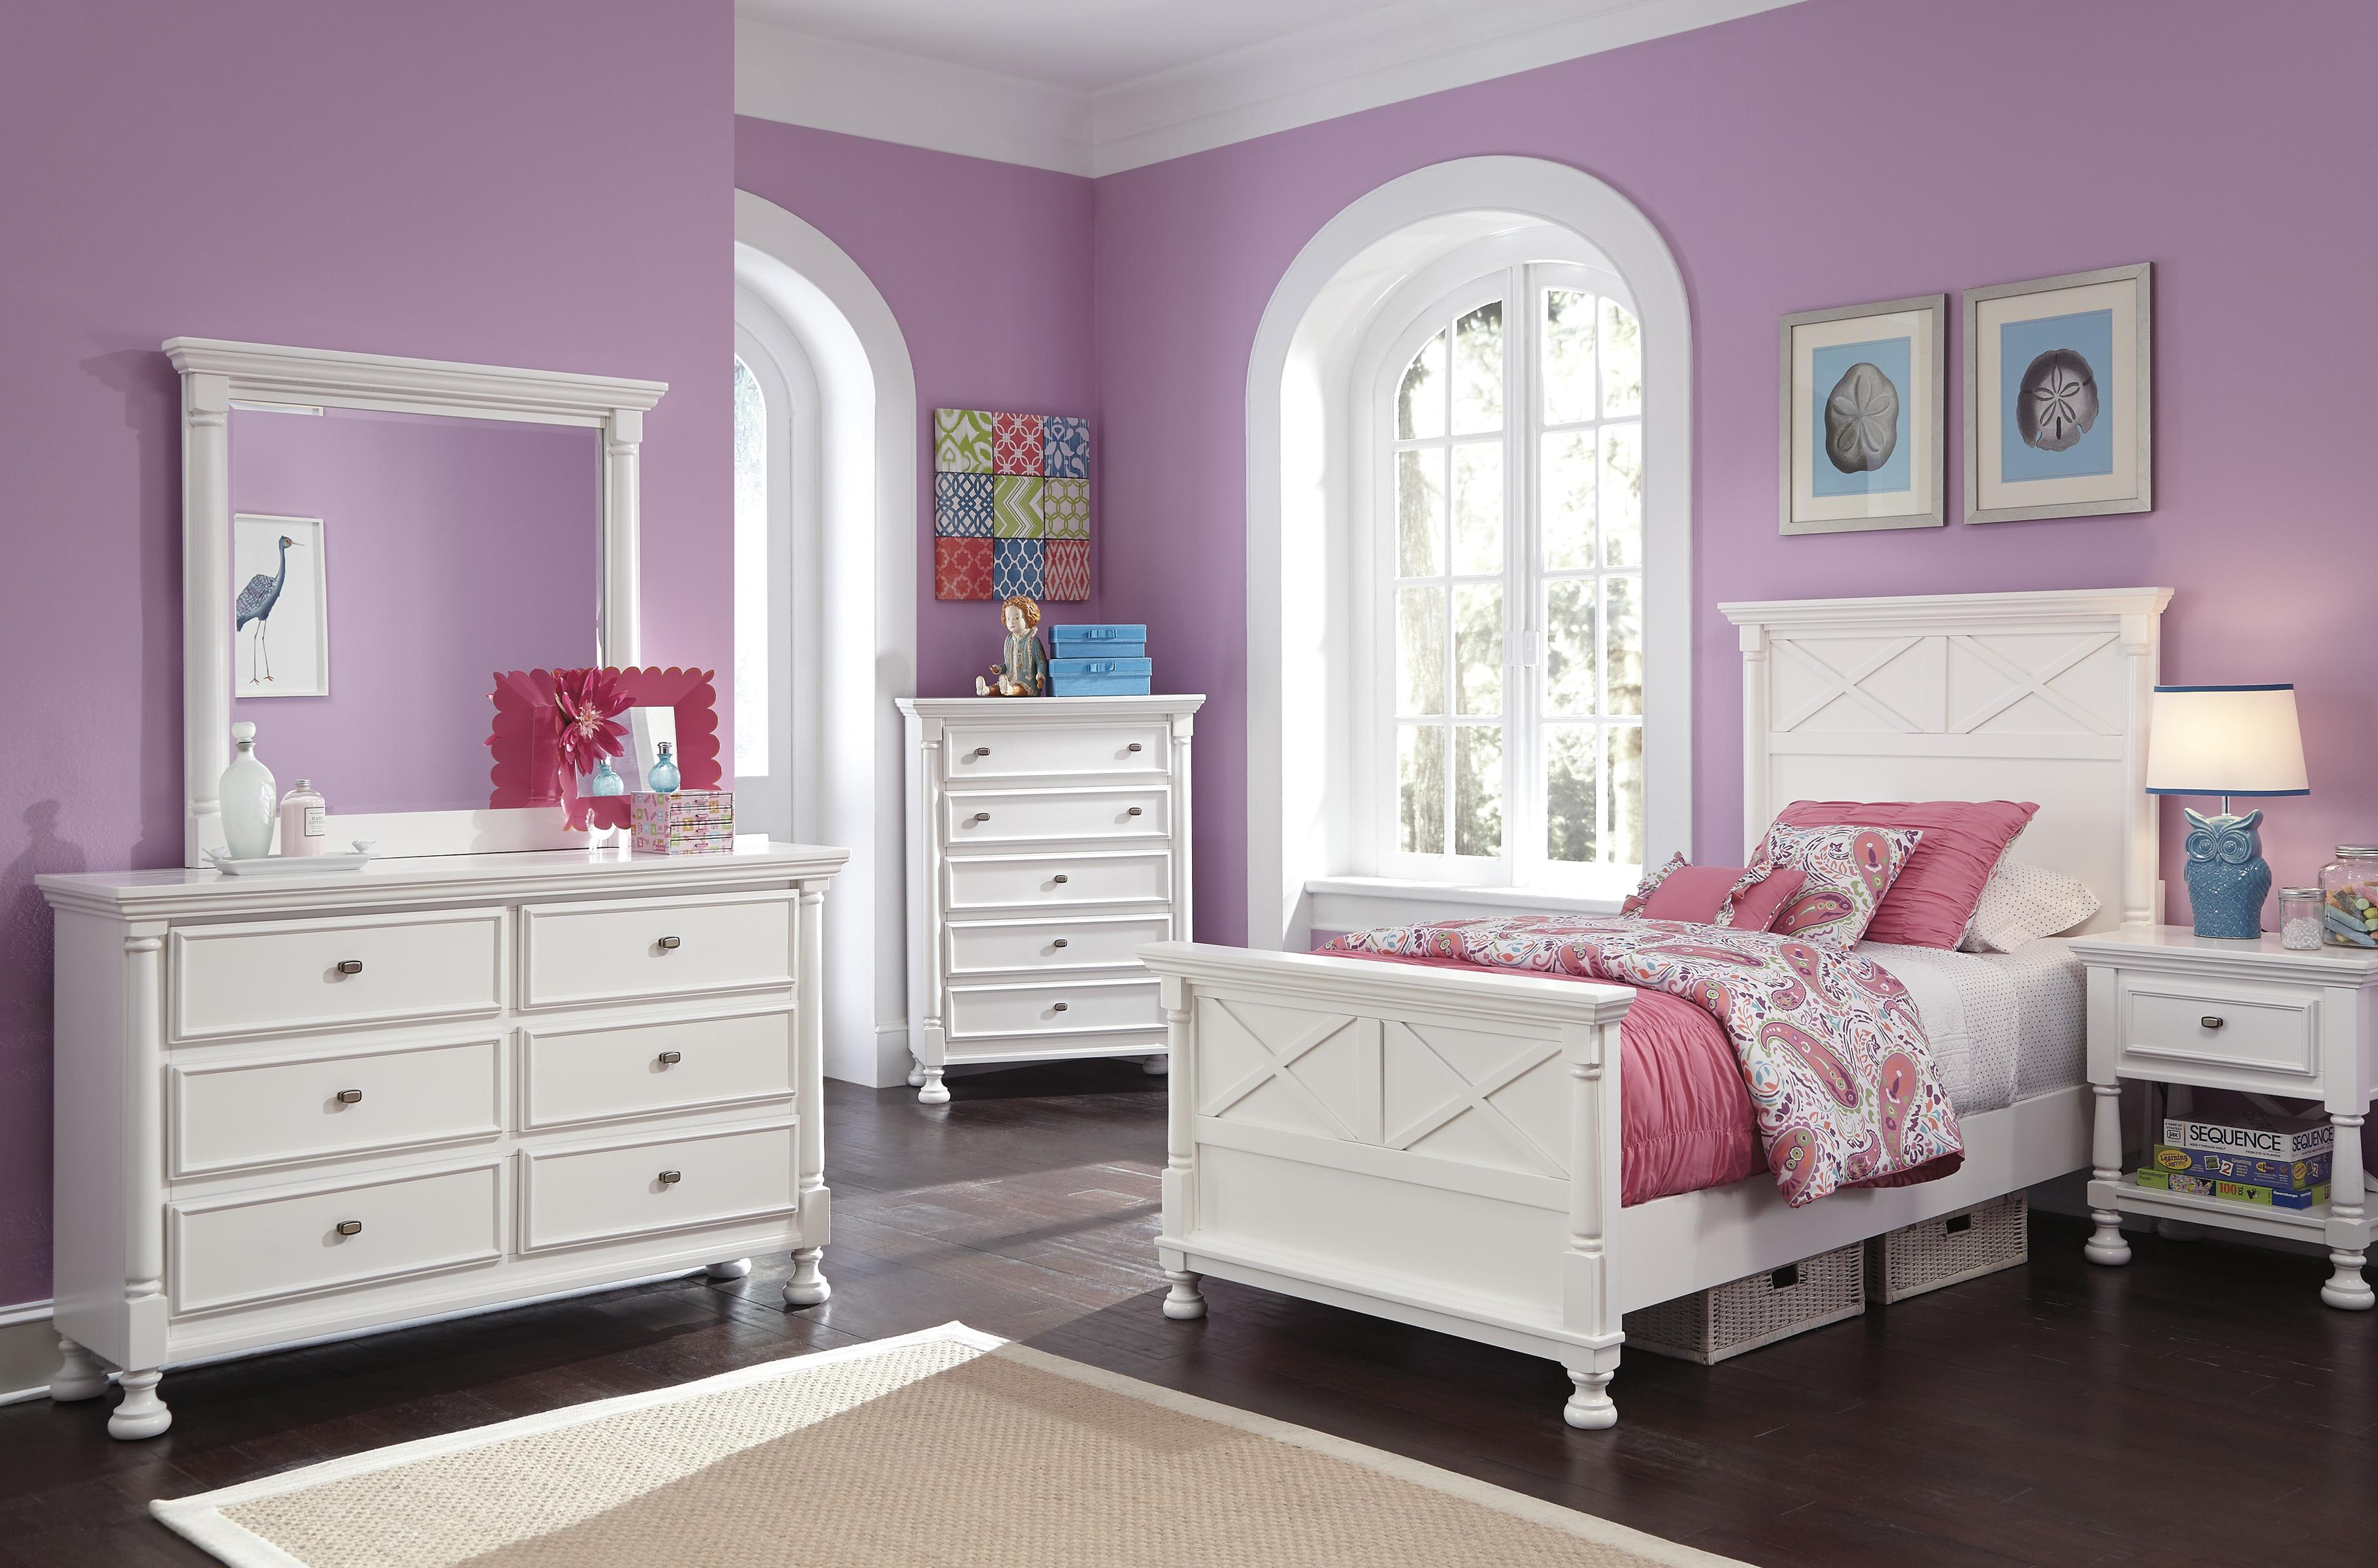 Signature Design by Ashley Kaslyn Twin Bedroom Group - Item Number: B502 T Bedroom Group 1